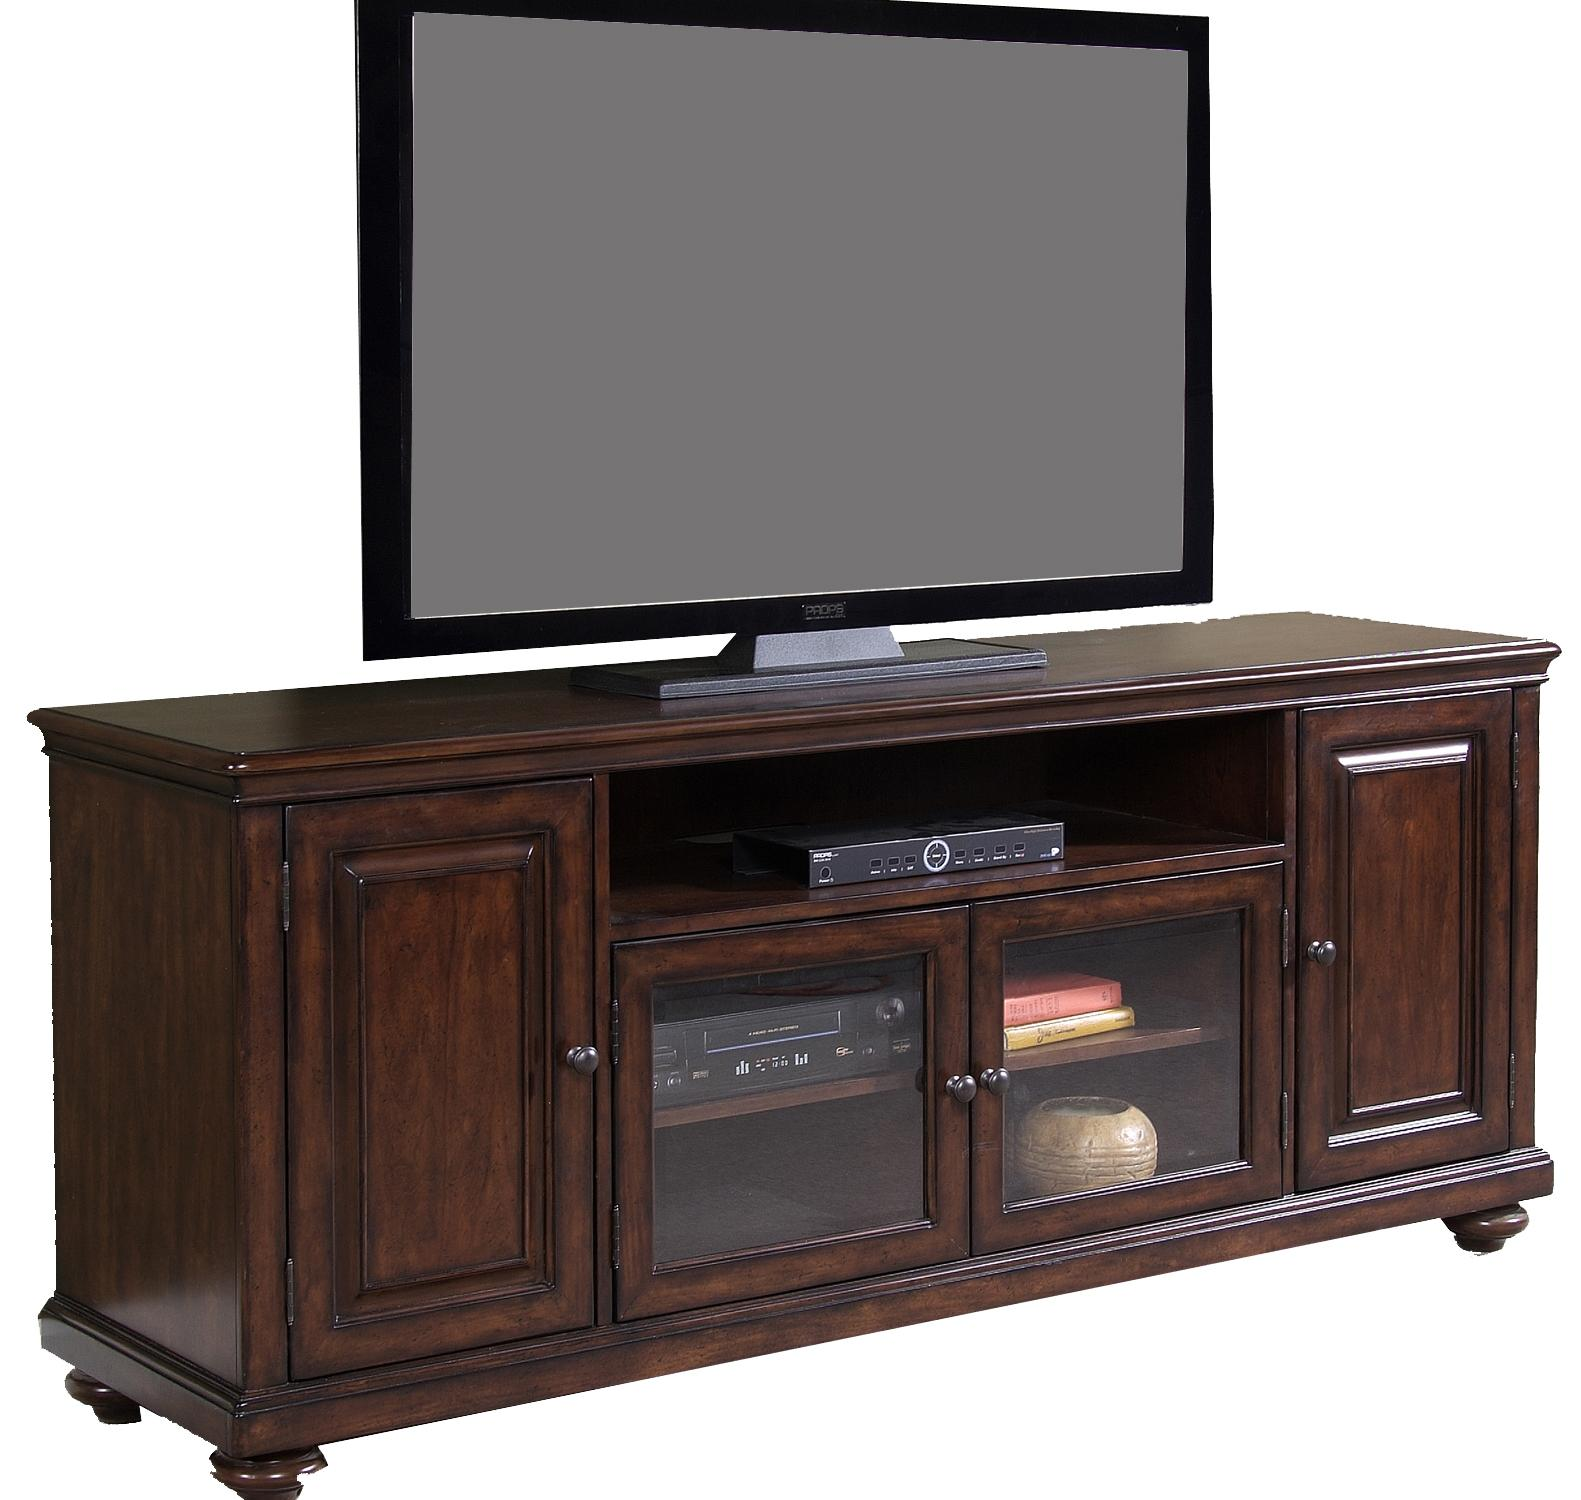 Four Door Entertainment Tv Stand By Liberty Furniture Wolf And Gardiner Wolf Furniture